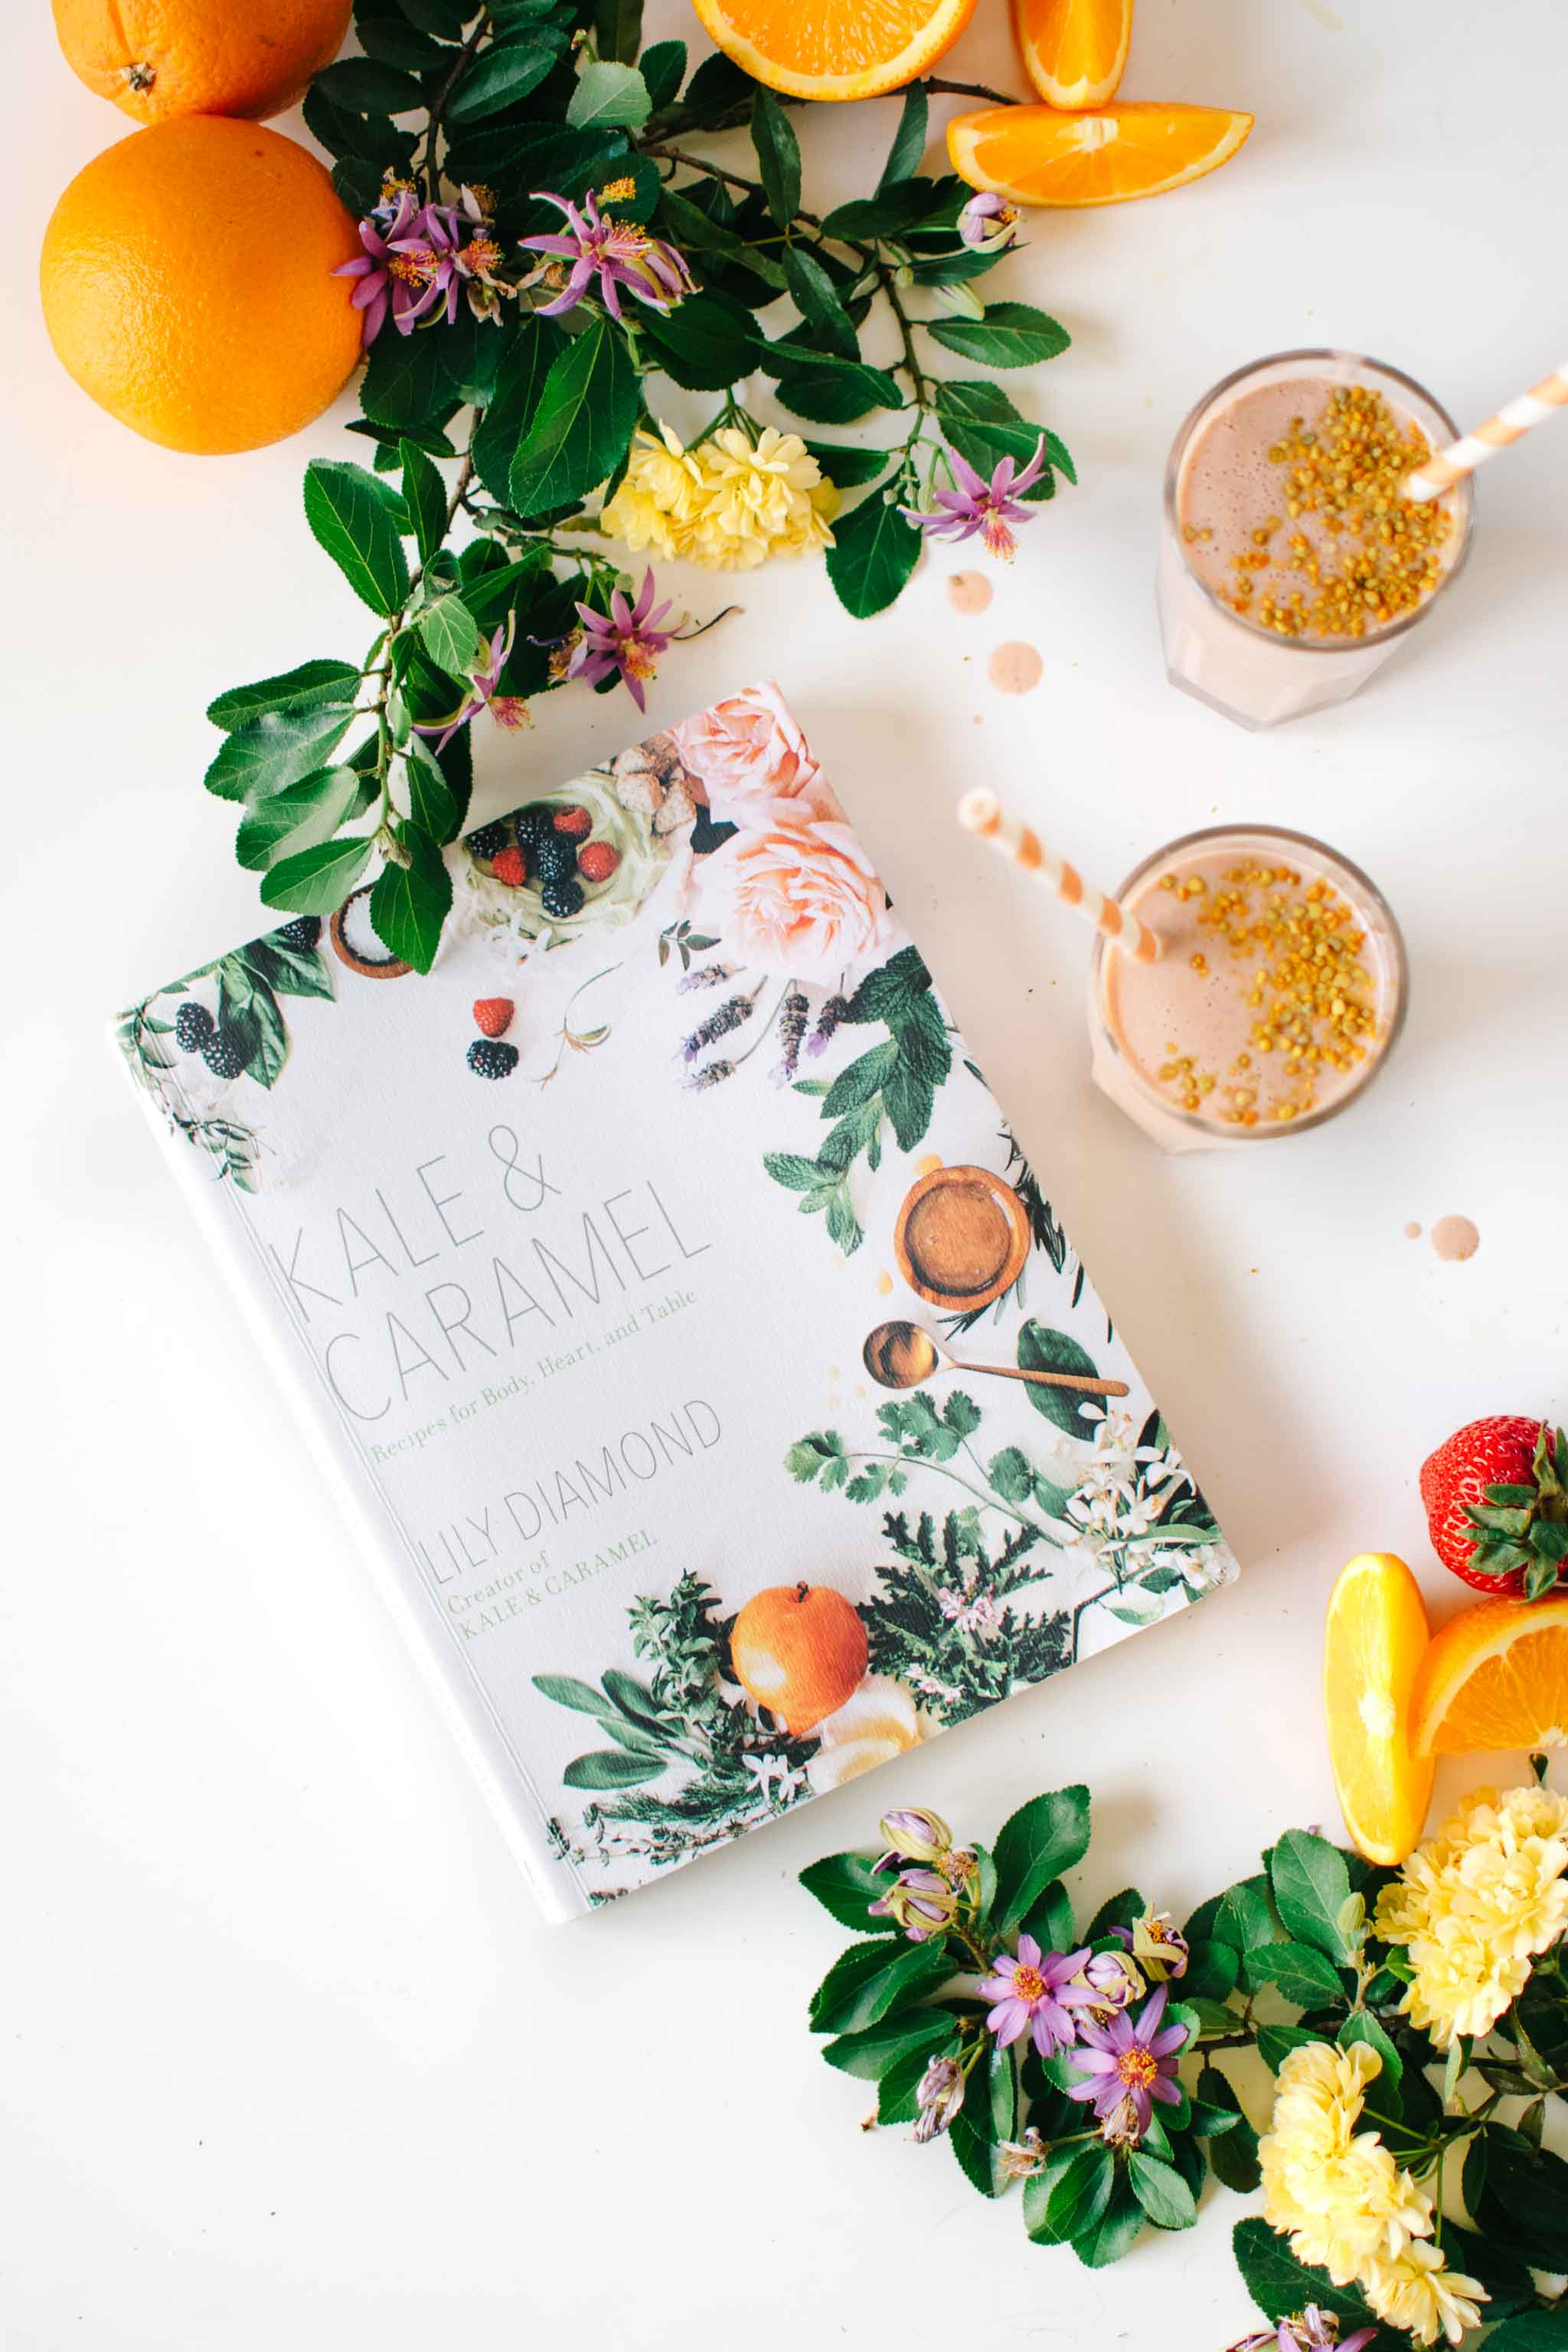 Kale & Caramel Cookbook with Strawberry Orange Blossom Creamsicle Smoothie